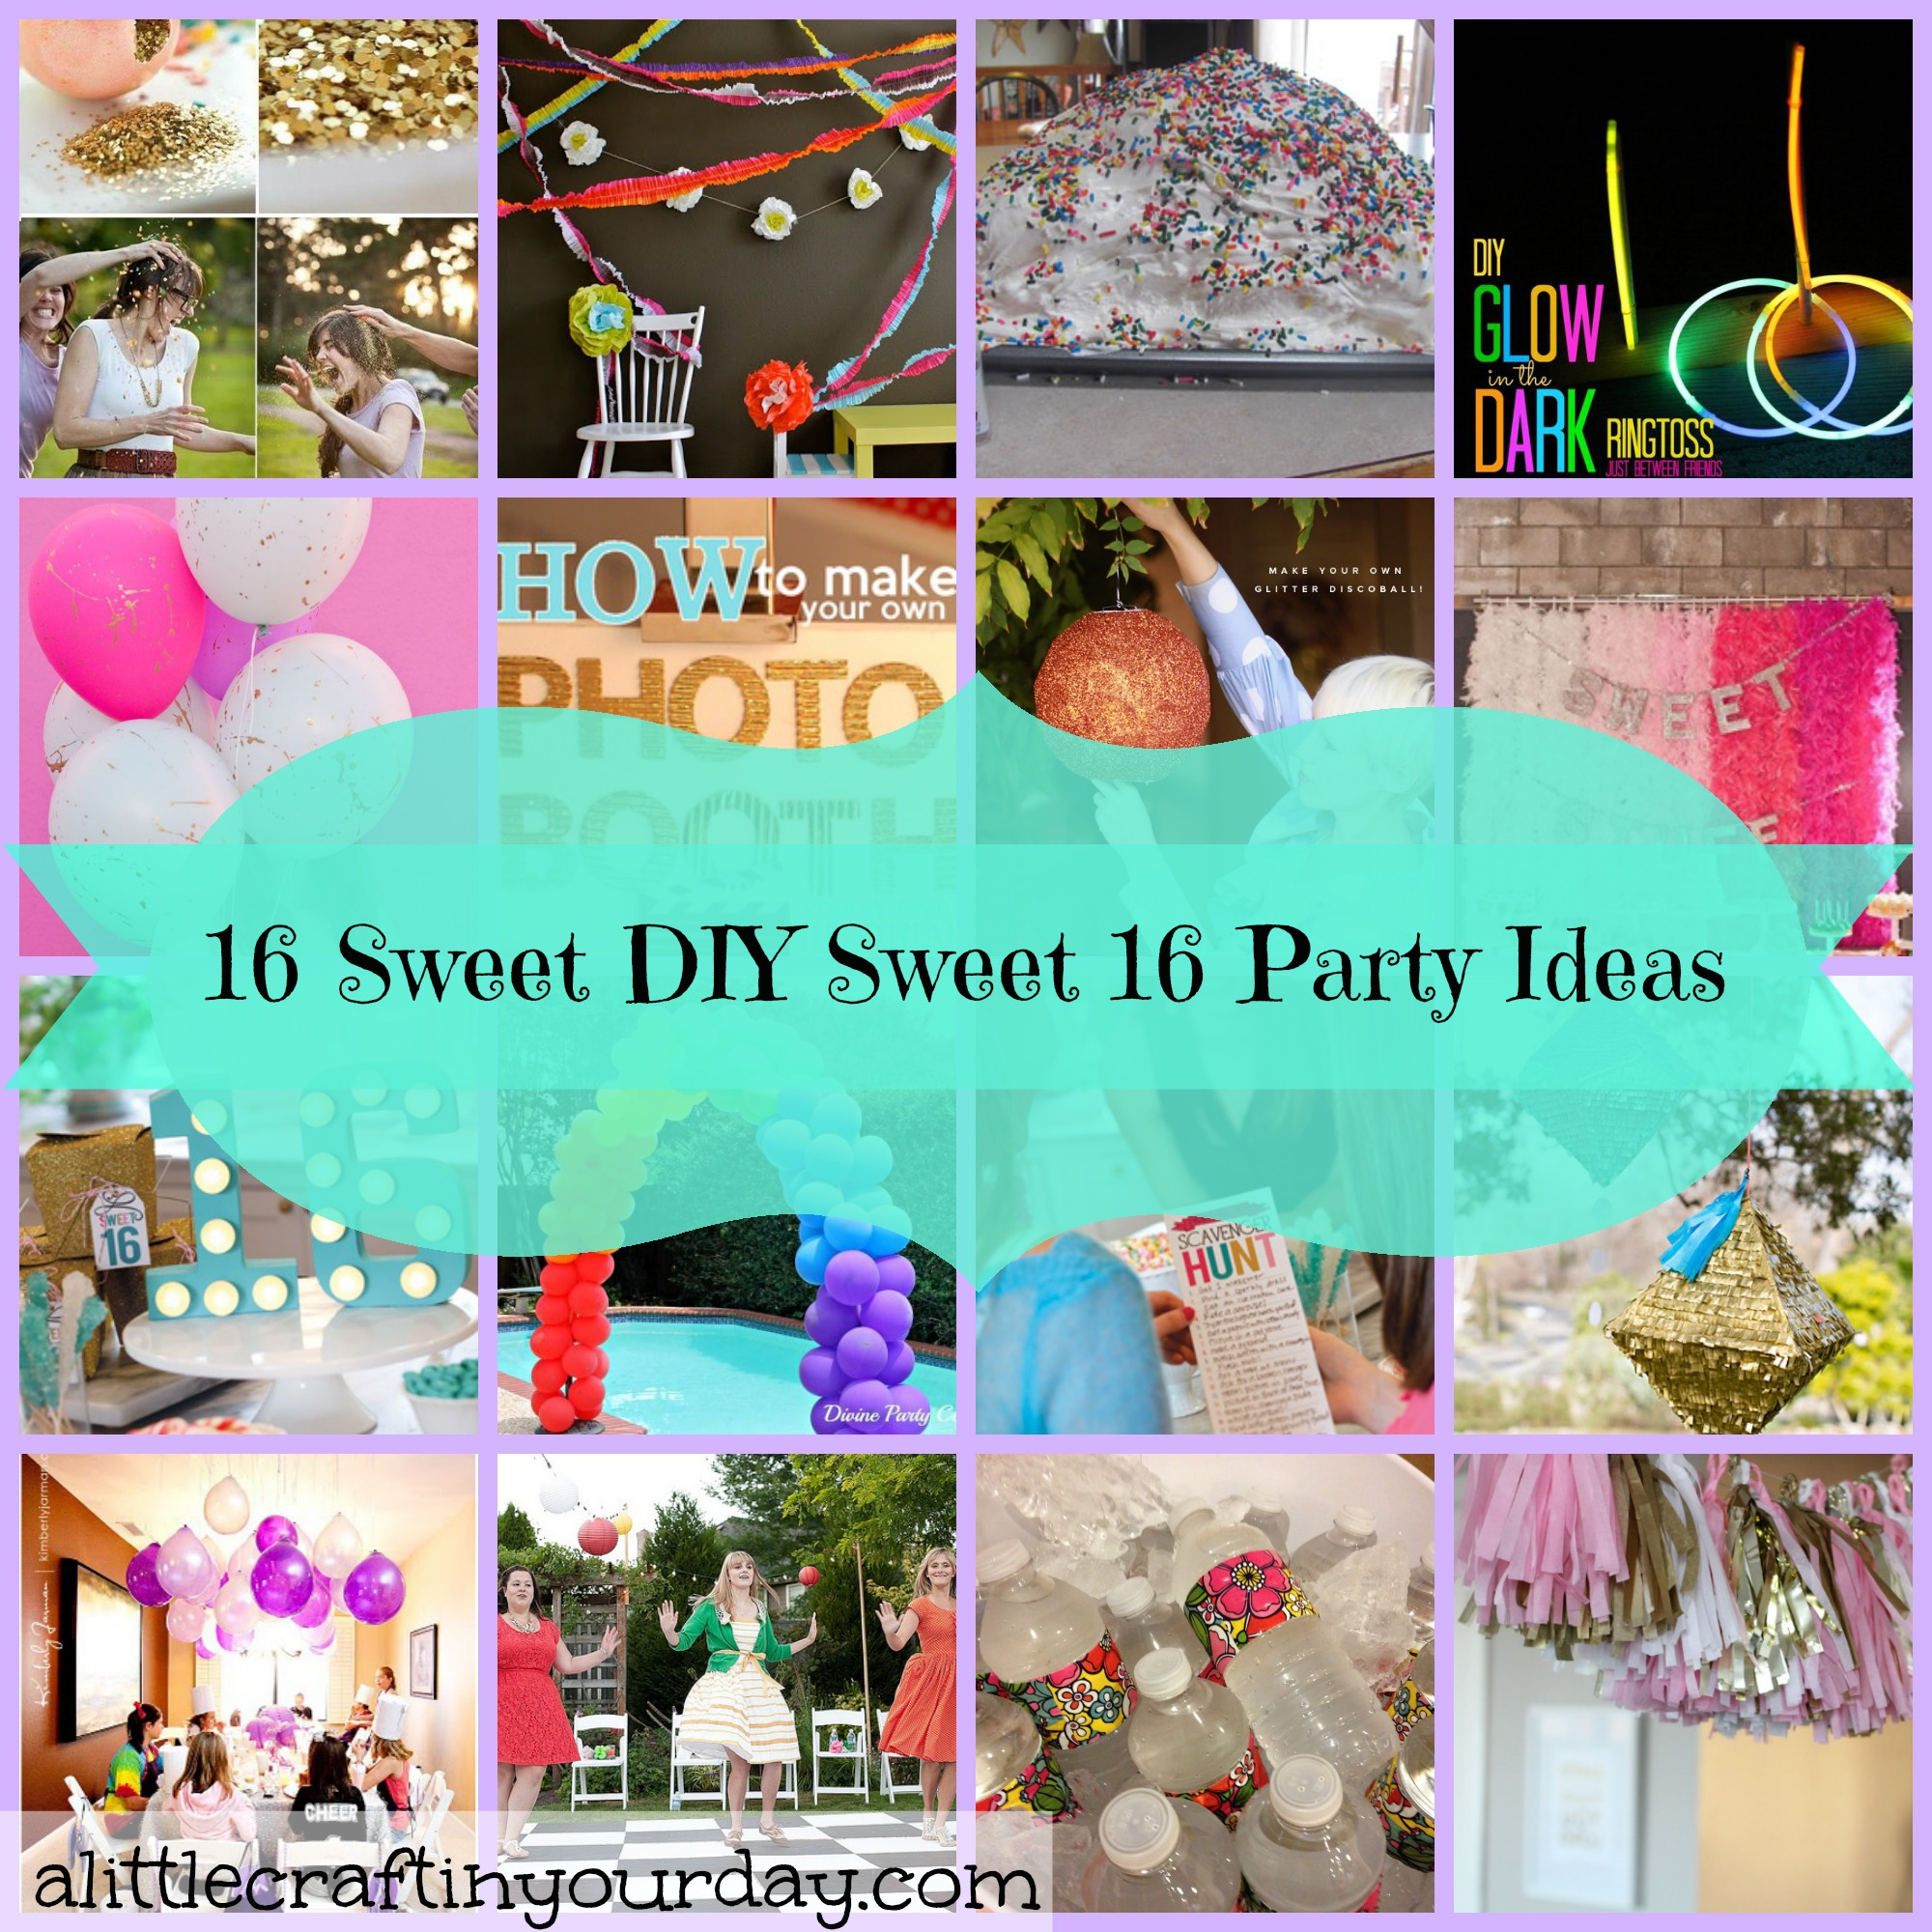 16 sweet diy sweet 16 party ideas a little craft in your daya little